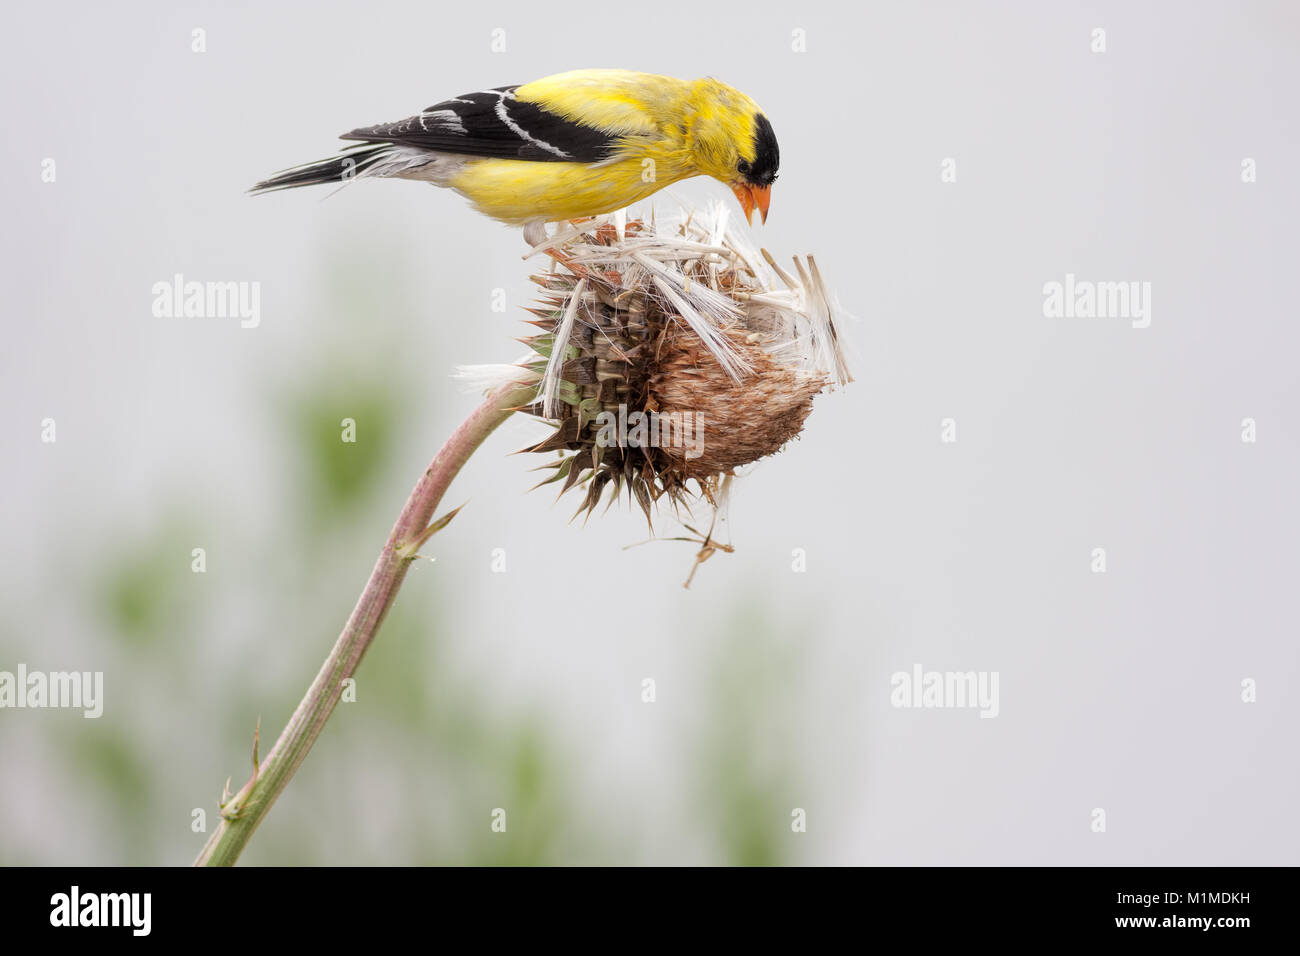 American Goldfinch (Spinus tristis), also known as the Eastern Goldfinch and Wild Canary. This photo shows the breeding - Stock Image